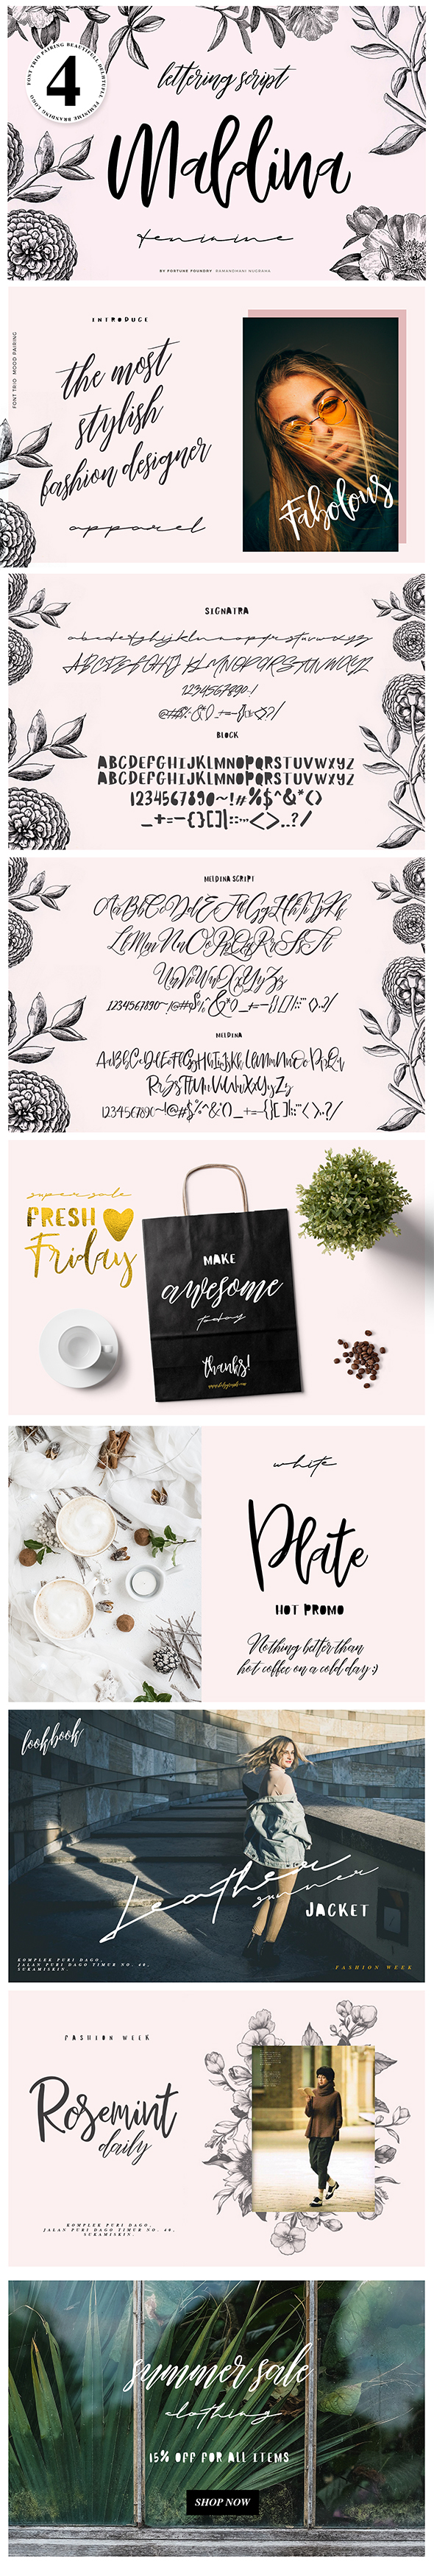 GraphicRiver Maldina Feminime 4 fonts 21203658